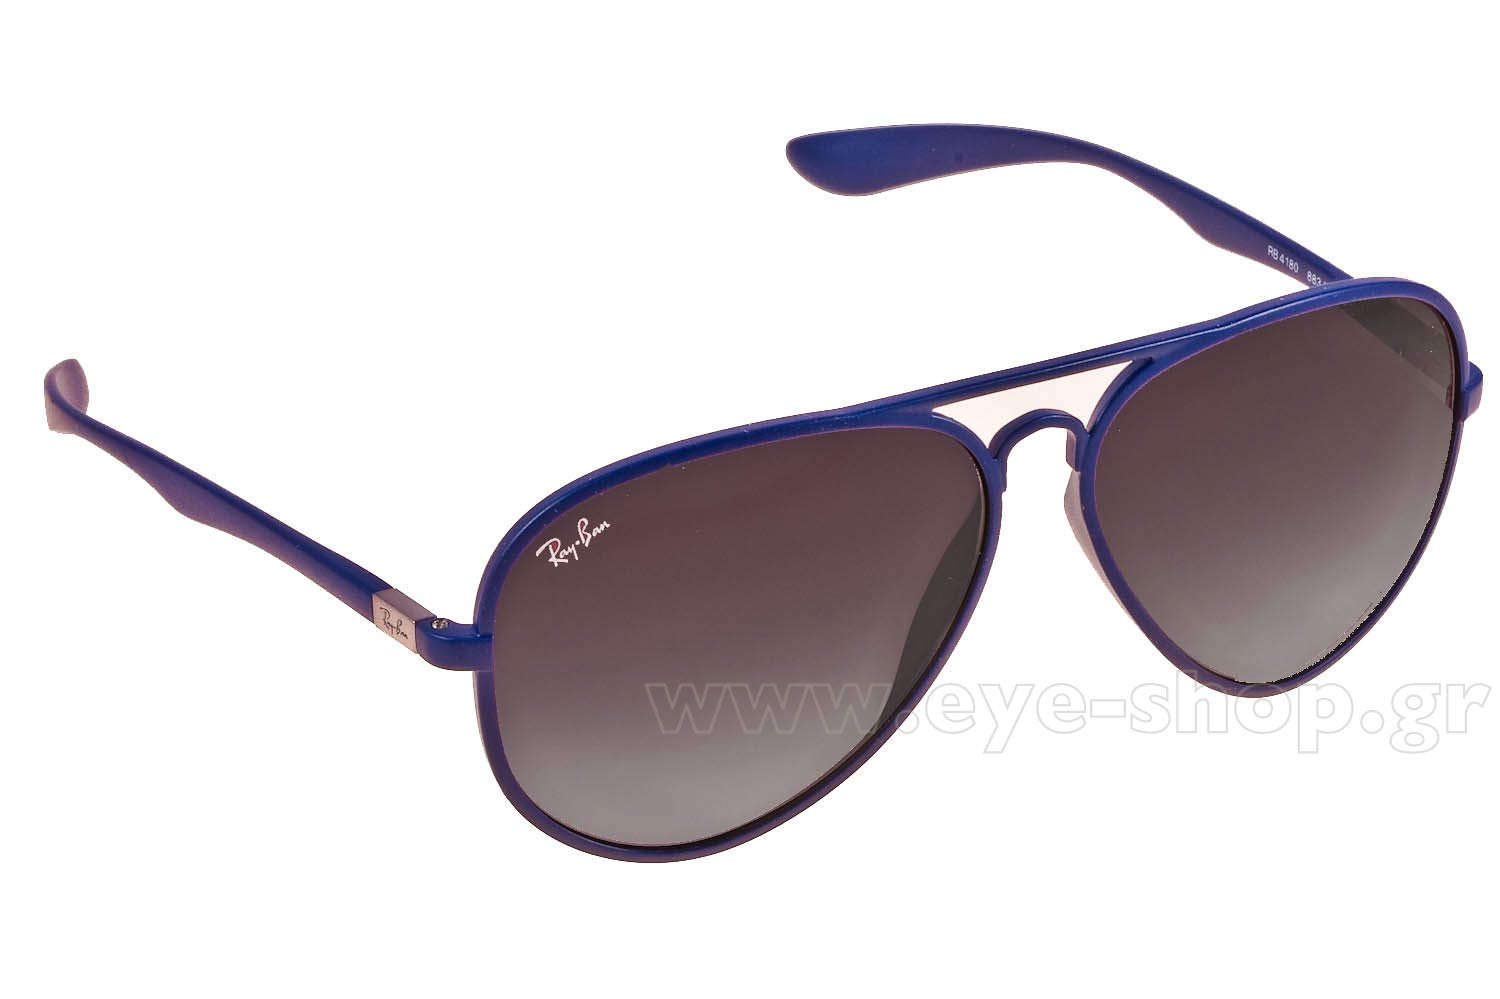 ad0ffffd79 SUNGLASSES Rayban 4180 Aviator 883 8G Liteforce Tech